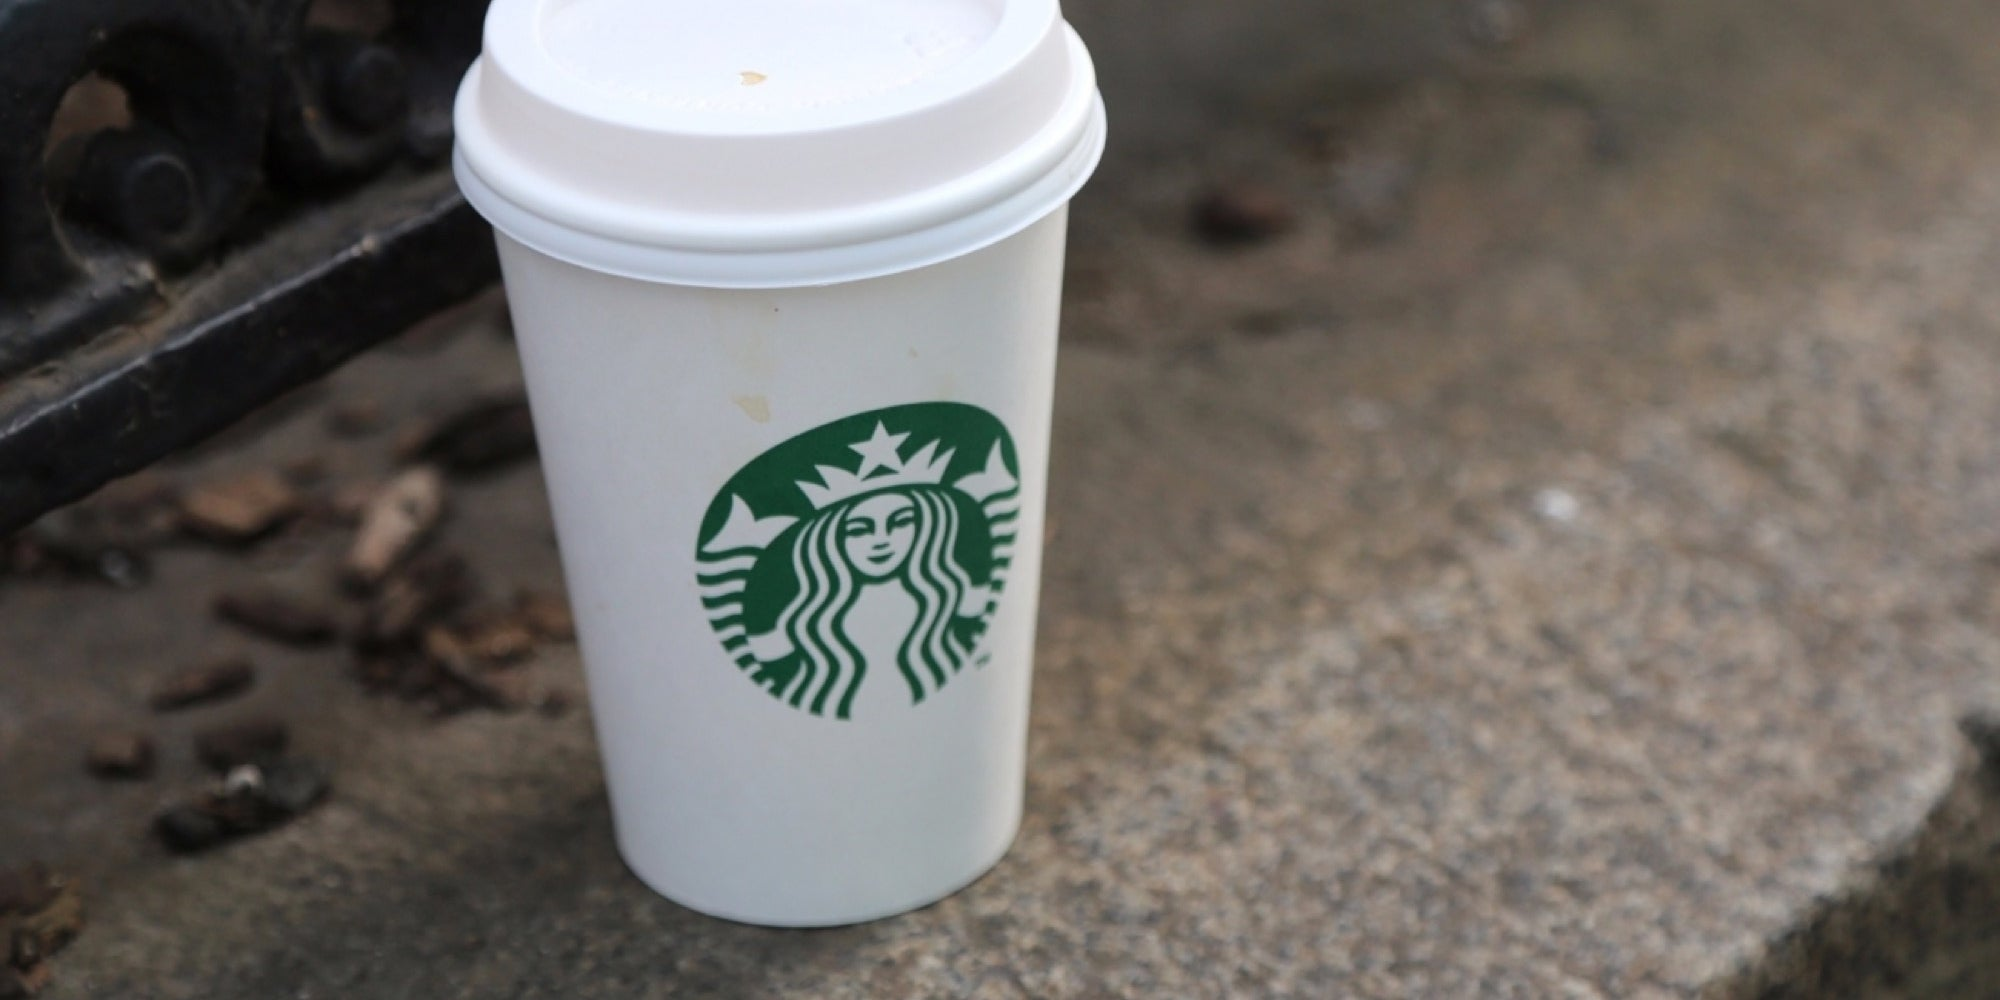 Iced Coffee Challenge: How Do Fast-Food Restaurants Measure Up to Coffee Chains?